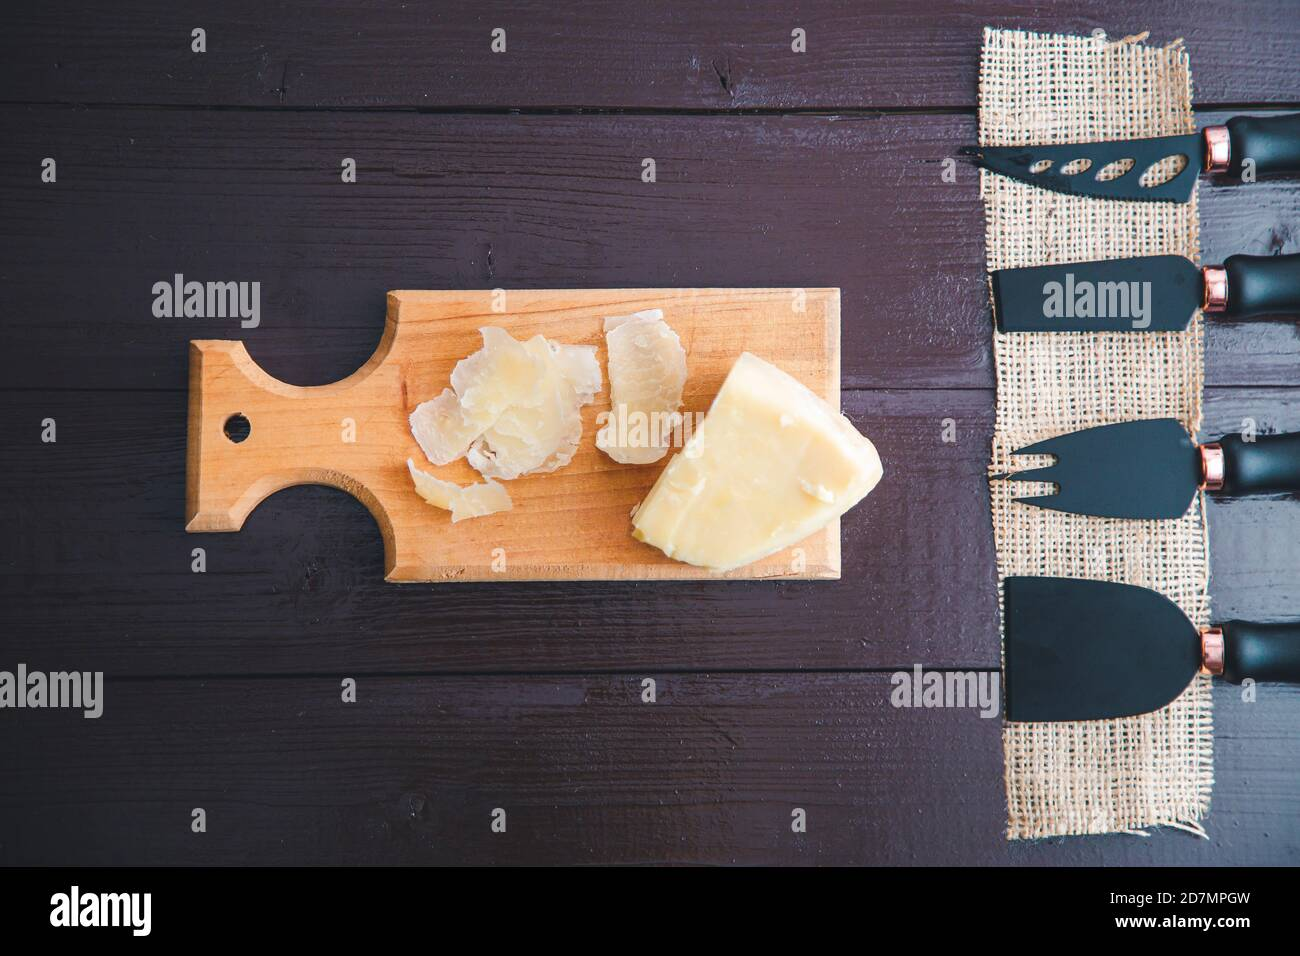 Composed Flat lay detail view of aged cheddar cheese with cheese knife set, over vintage brown wooden backdrop with copy space Stock Photo